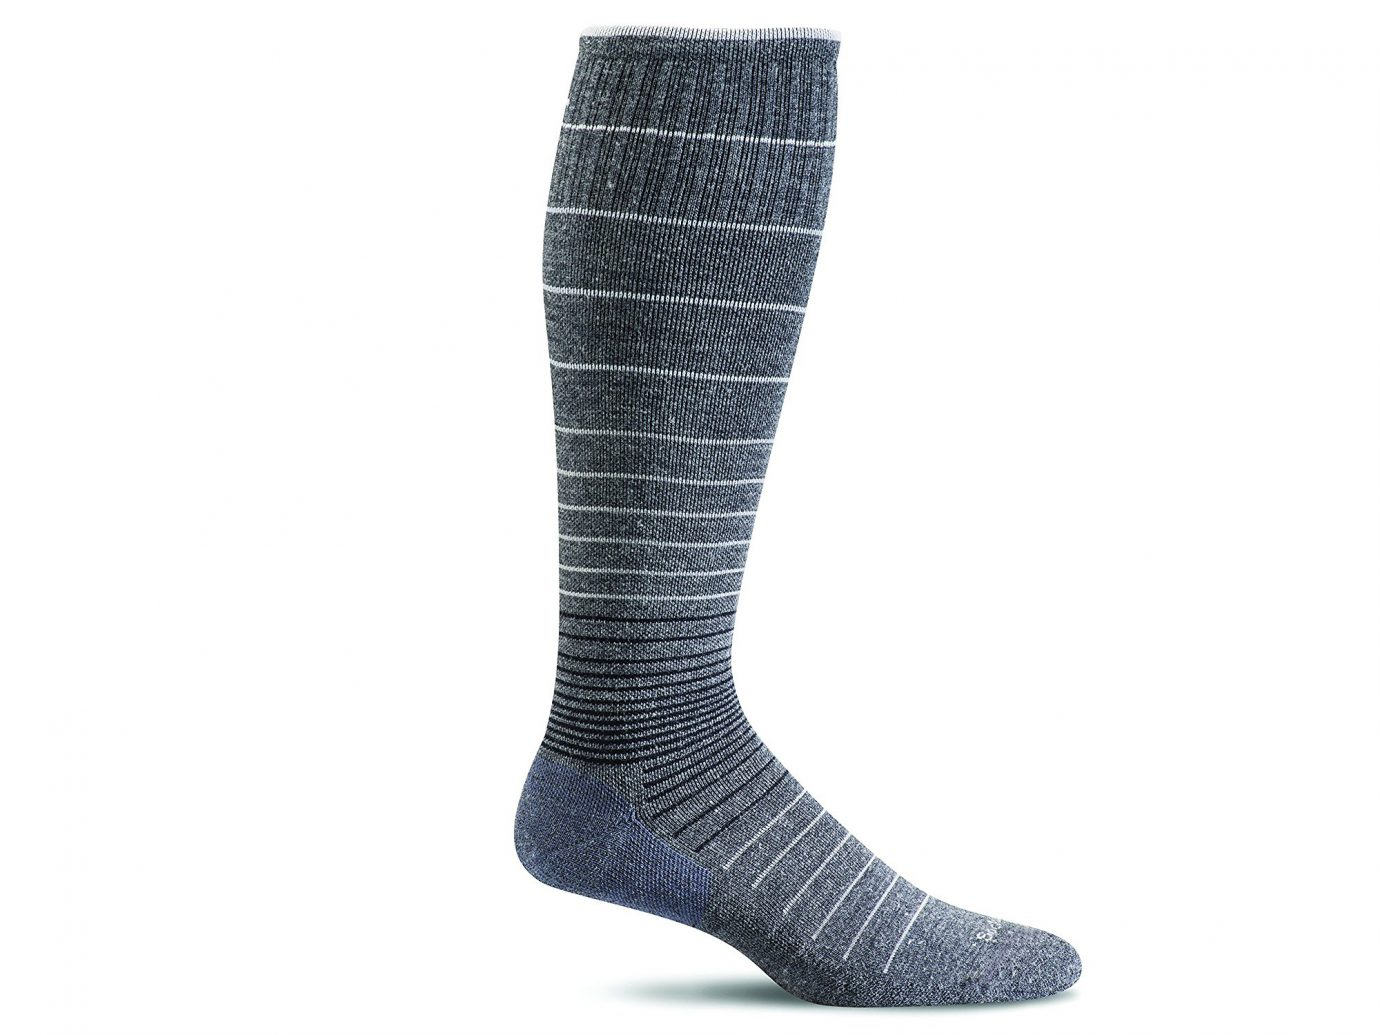 Sockwell Women's Circulator Graduated Compression Socks